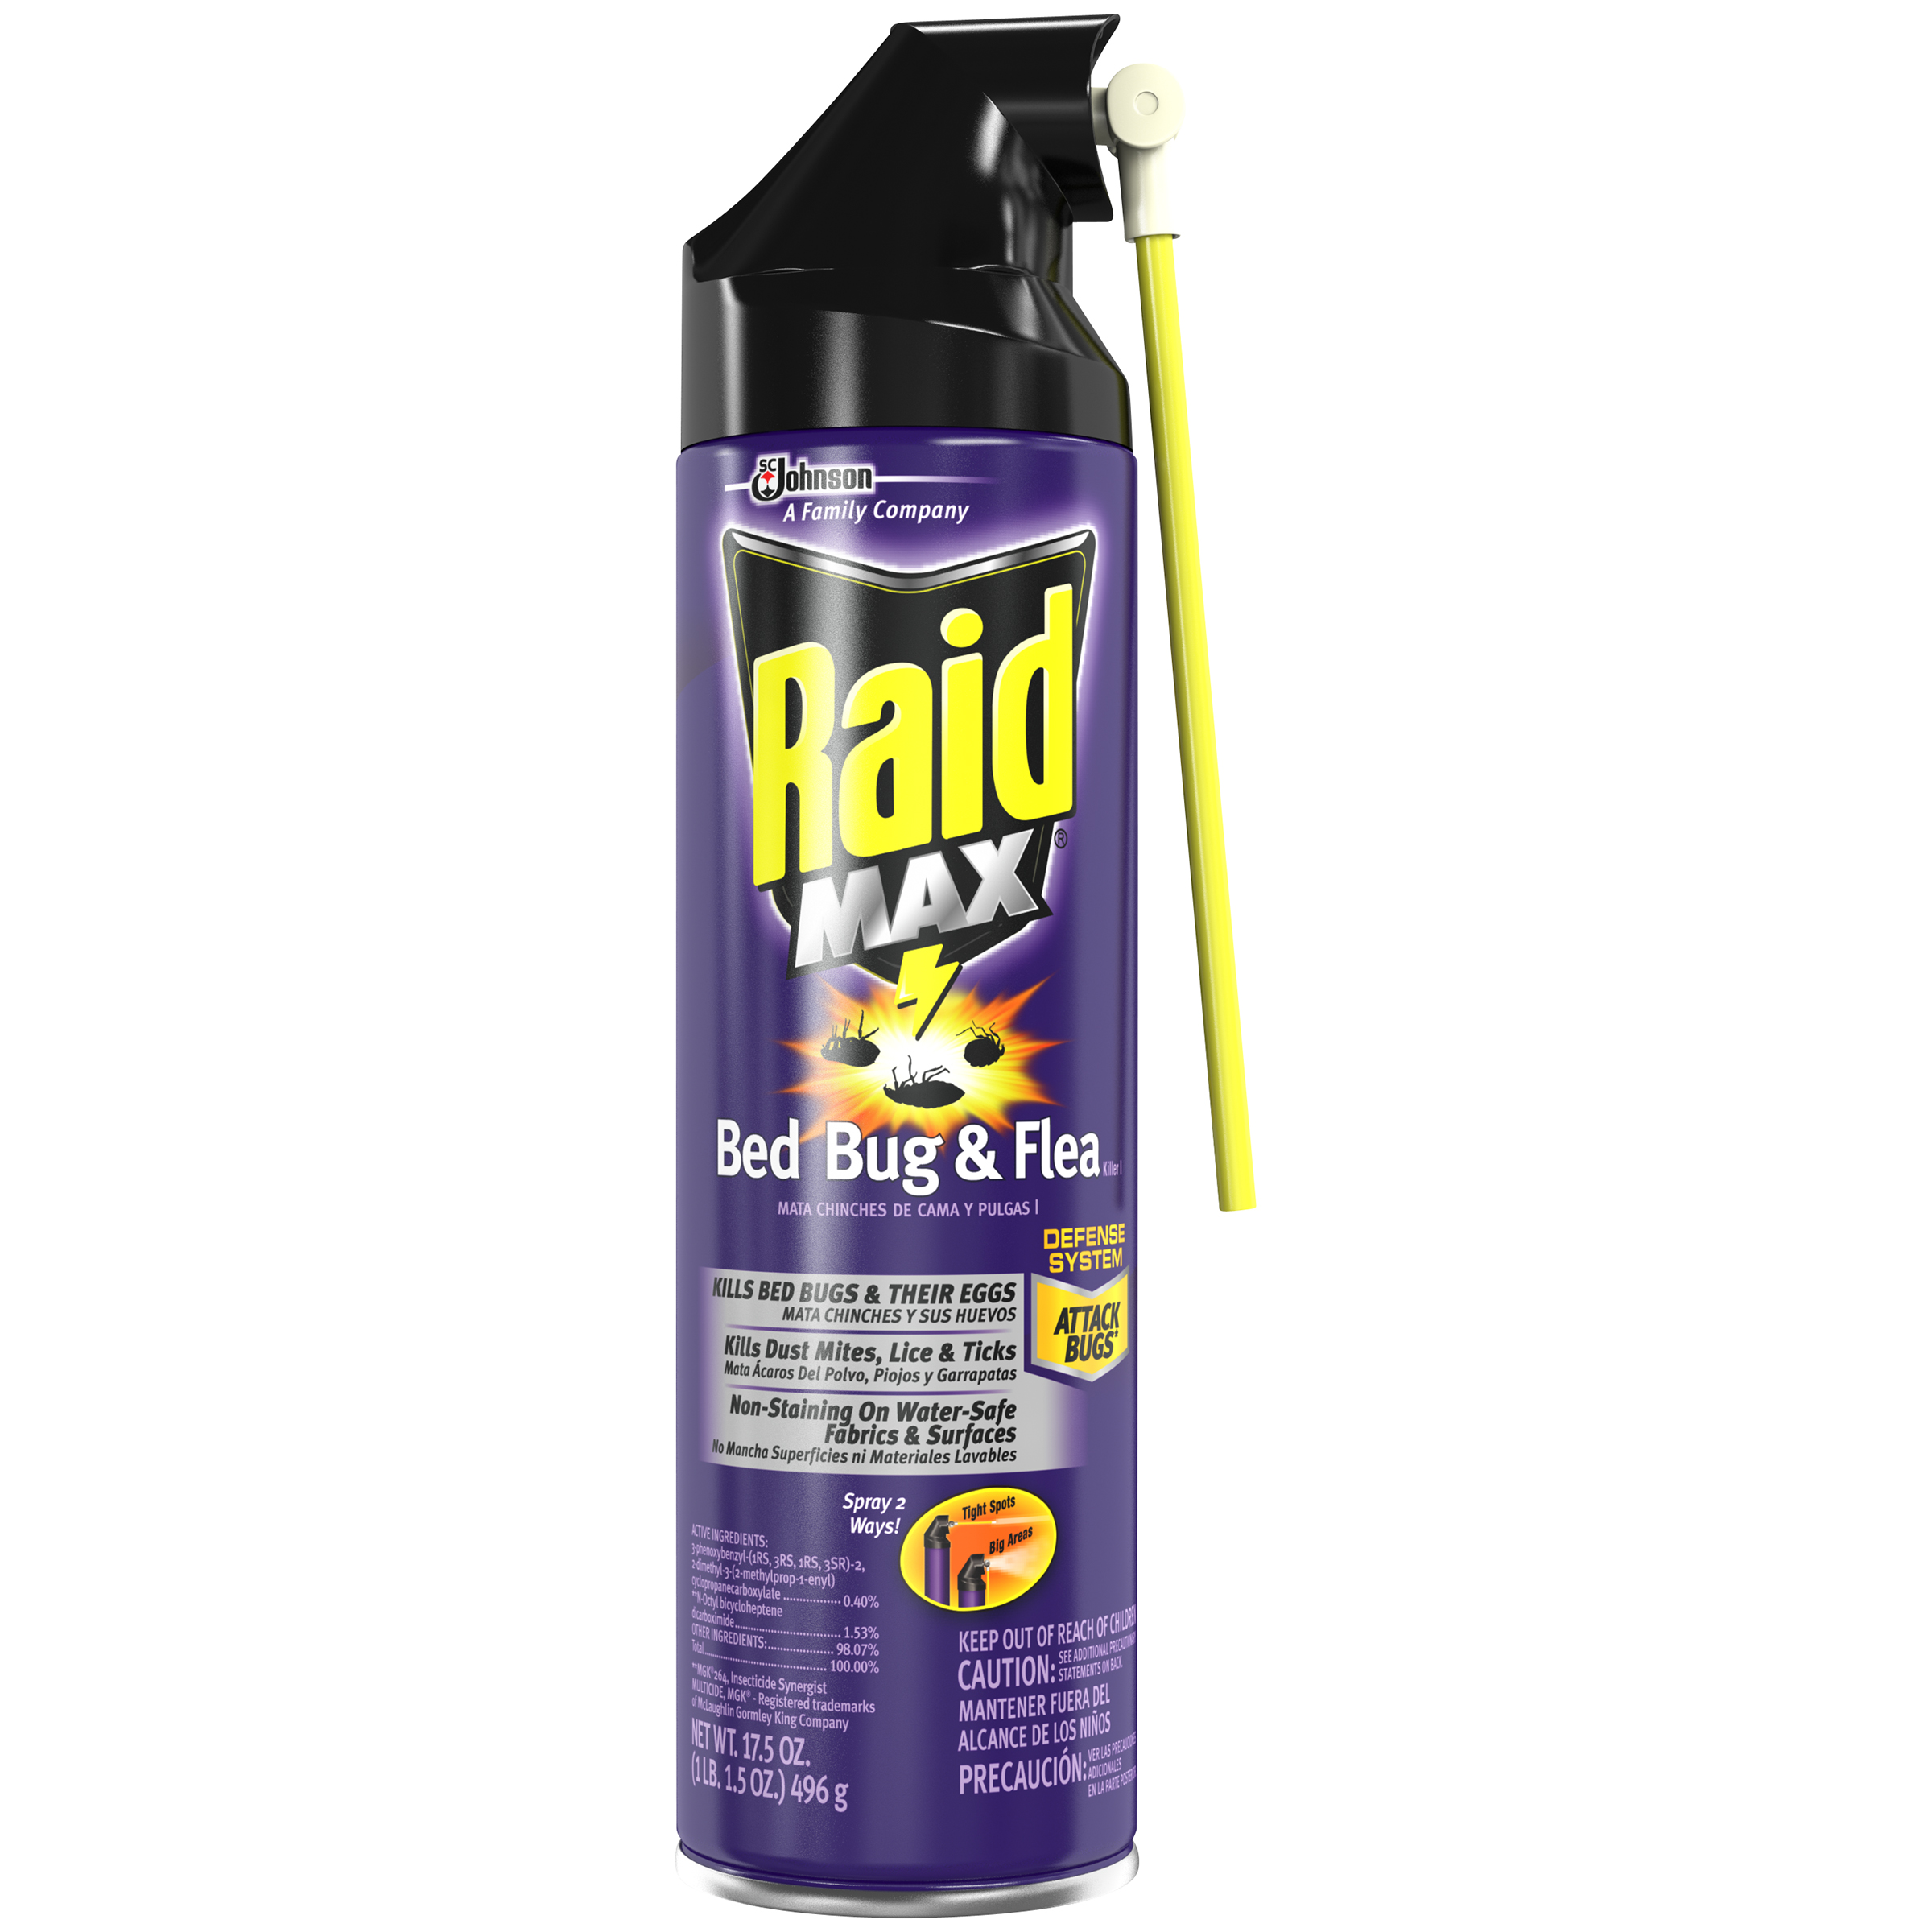 Raid Bed Bug Amp Flea Killer Insecticide 175 OZ AEROSOL CAN